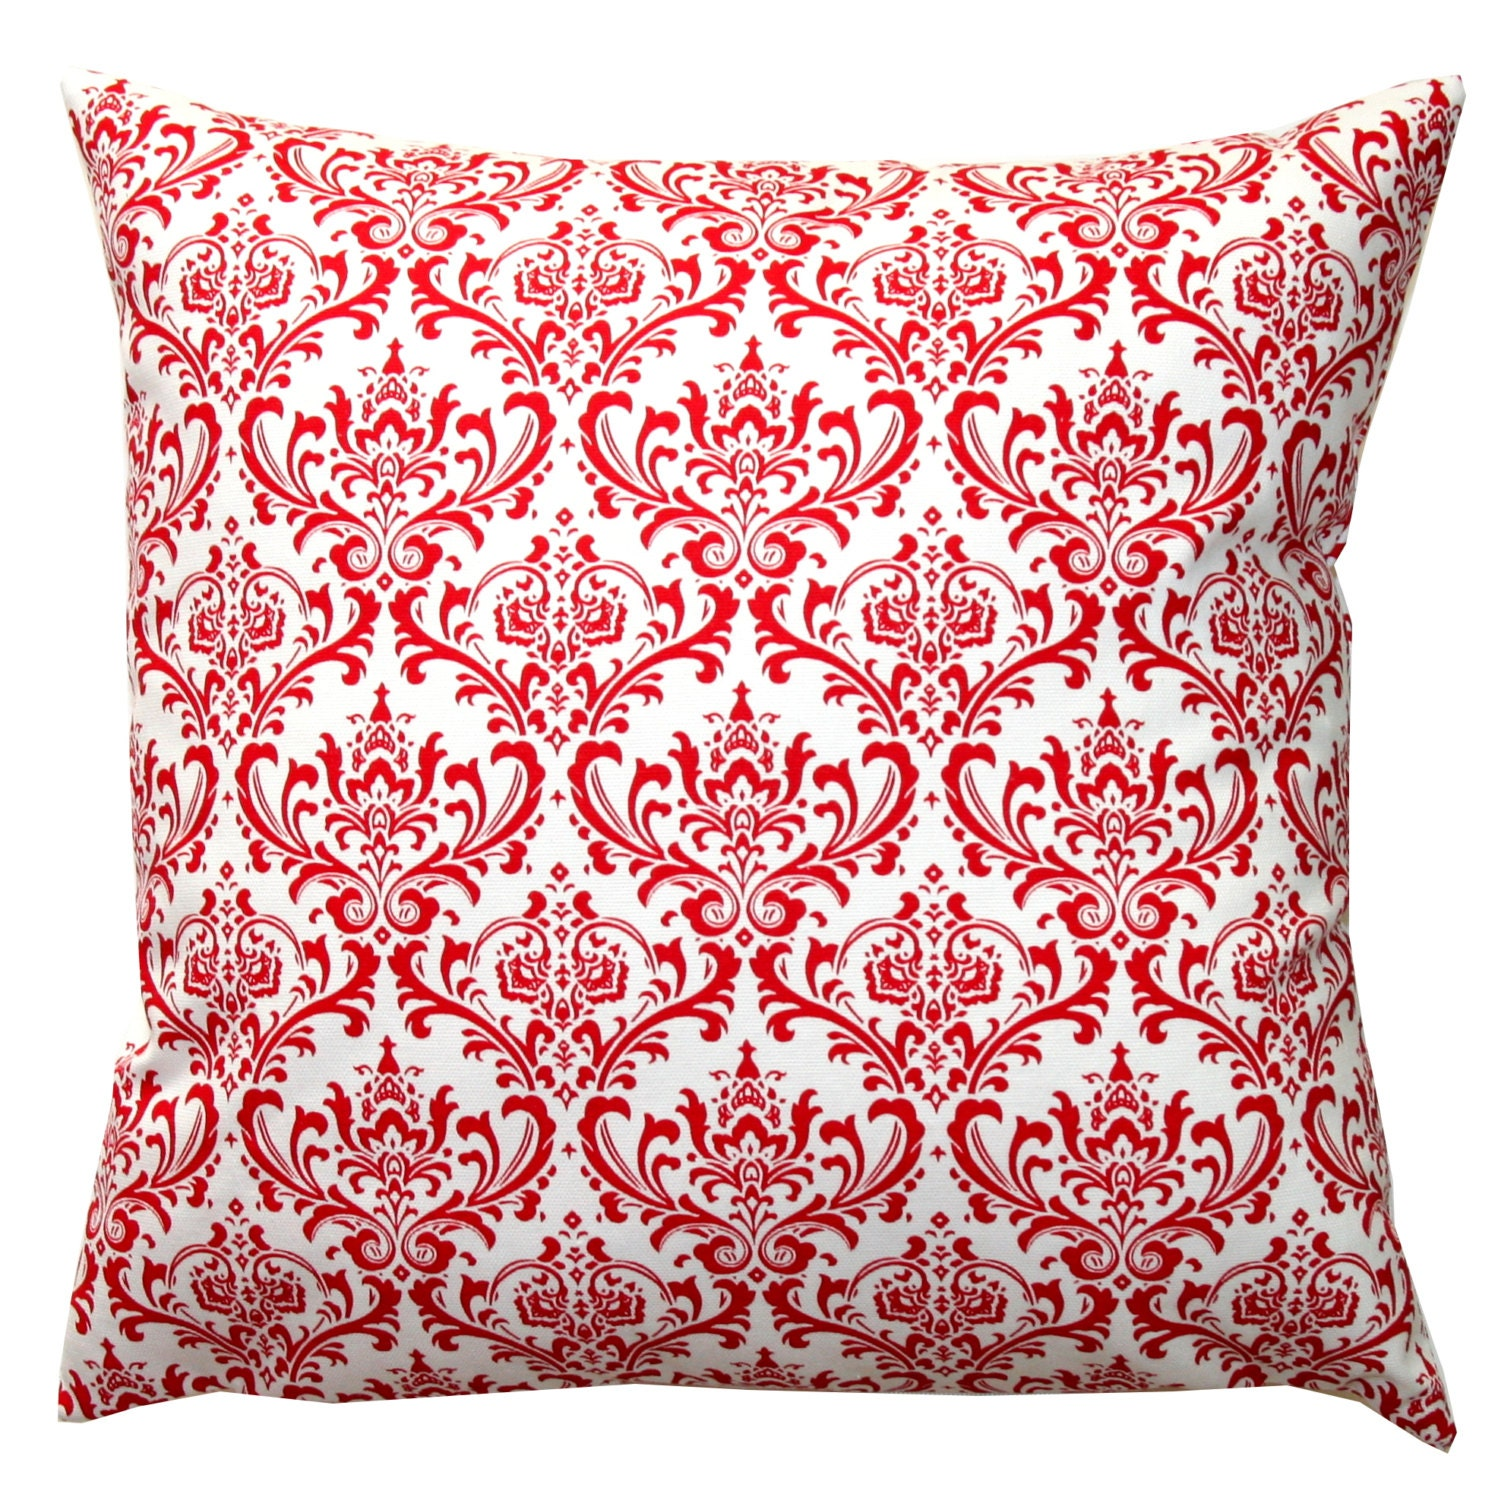 Throw Pillows In Clearance : CLEARANCE Decorative Pillows Premier by ModernalityHomeDecor